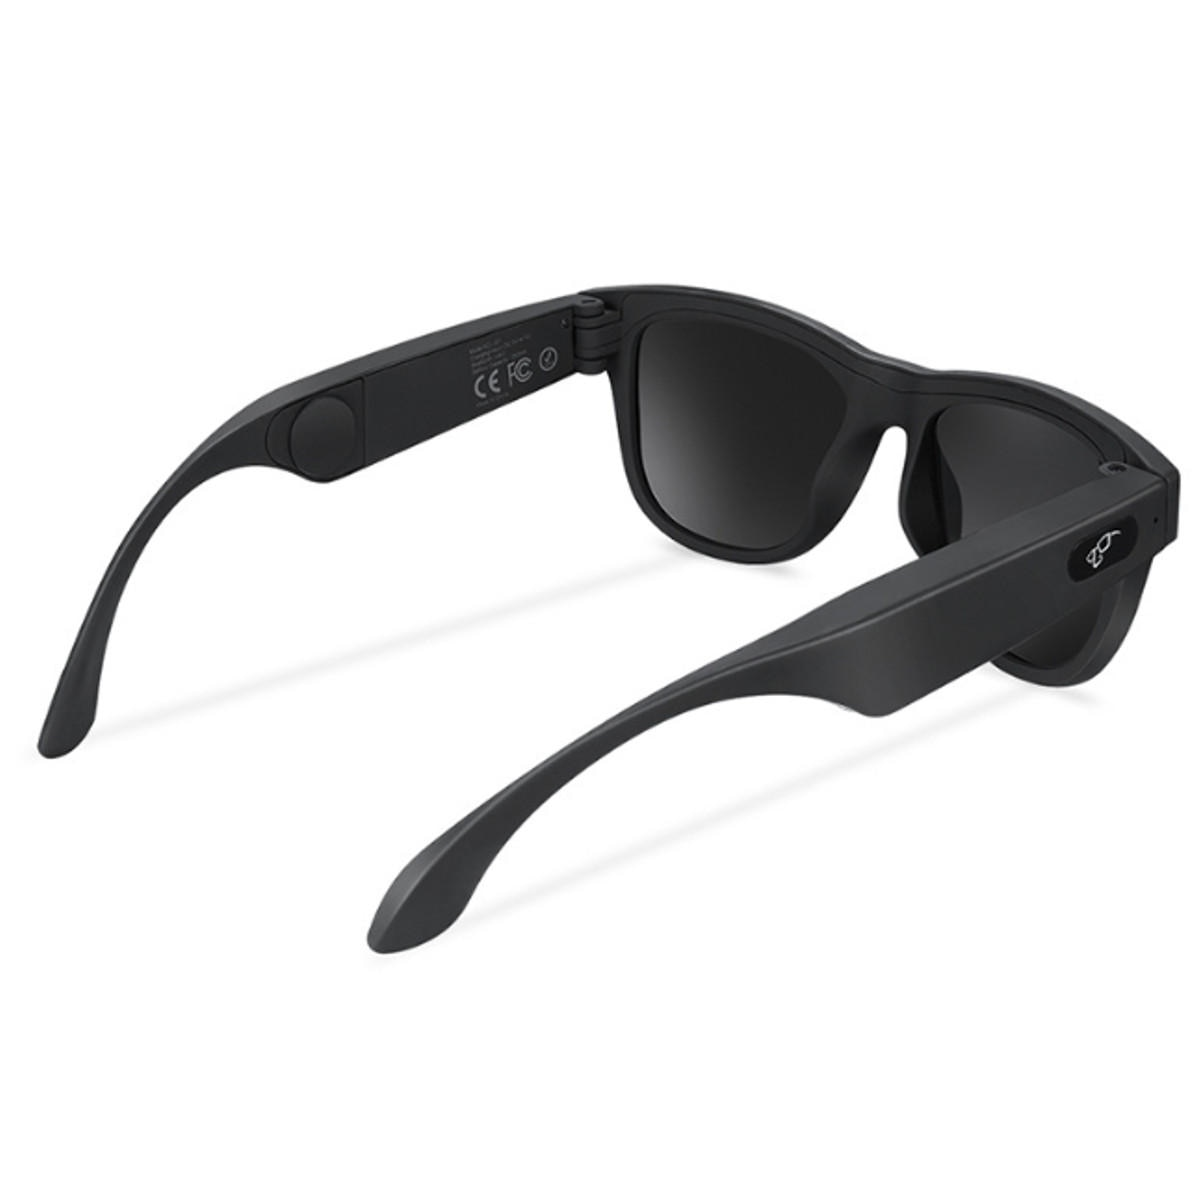 [bluetooth 5.0]F002 Alto Smart Wearable Voice Calls Music Play Smart Assistant bluetooth Glasses enlarge